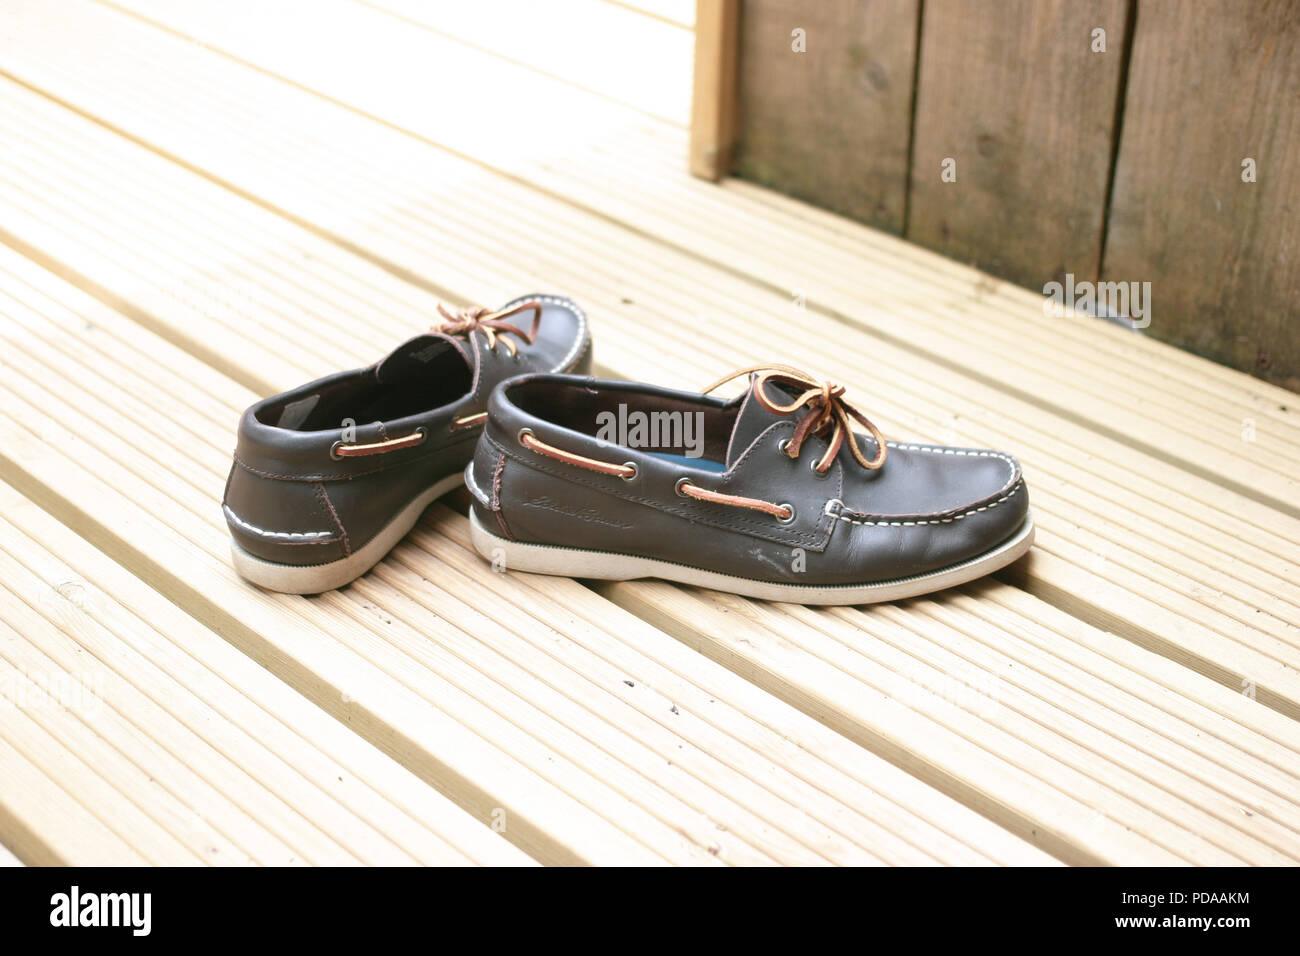 A pair of Men's leather shoes, on wooden decking outside in the garden. Stock Photo